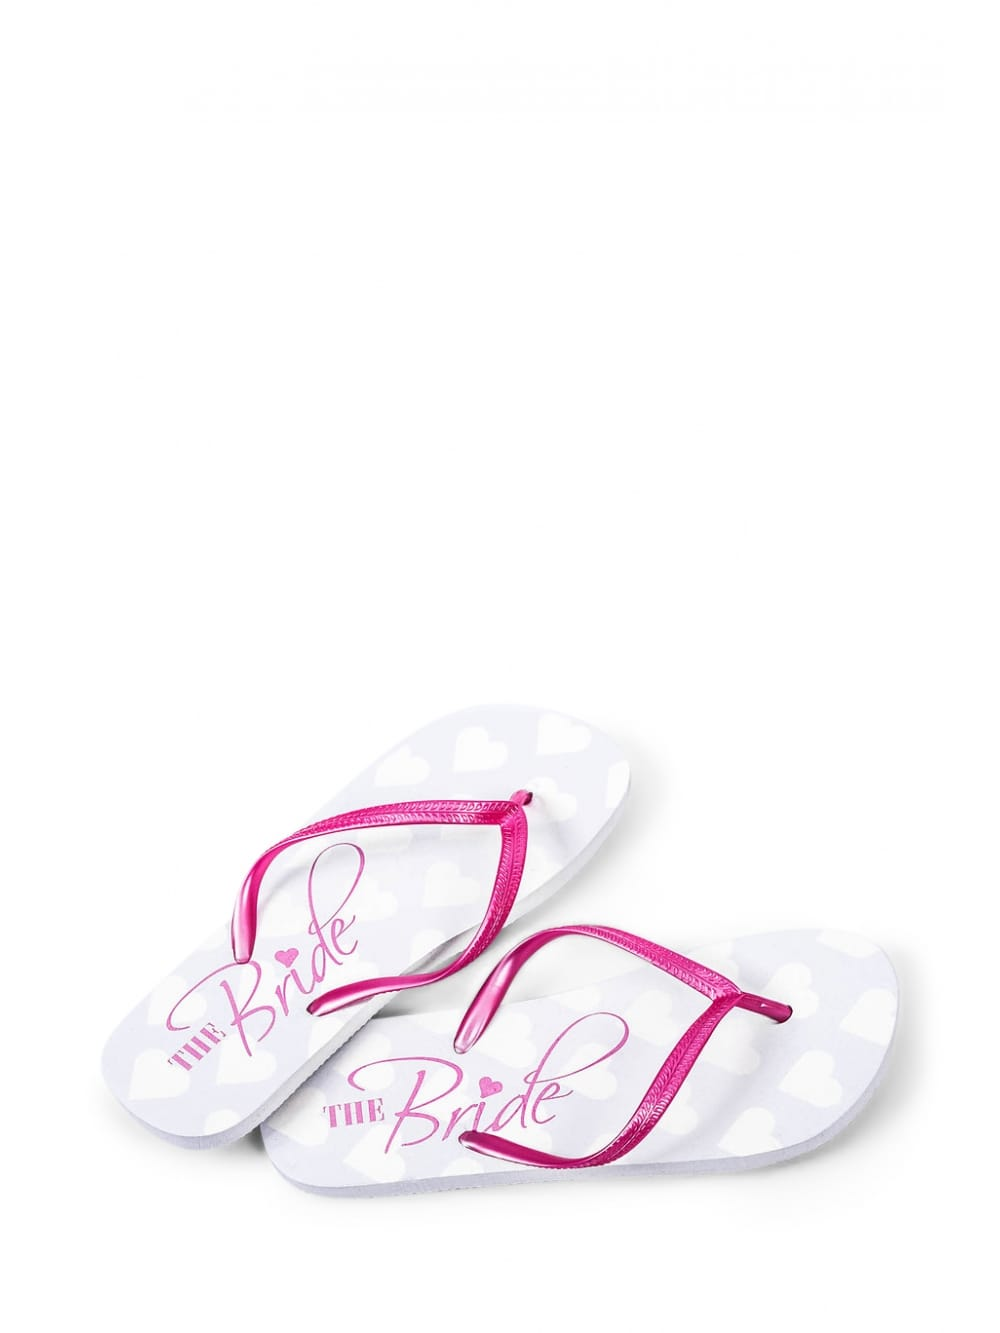 5e4e7e9ffb1e Bride Pink and White Flip Flops - Hen Party Accessories from Hen Party  Superstore UK